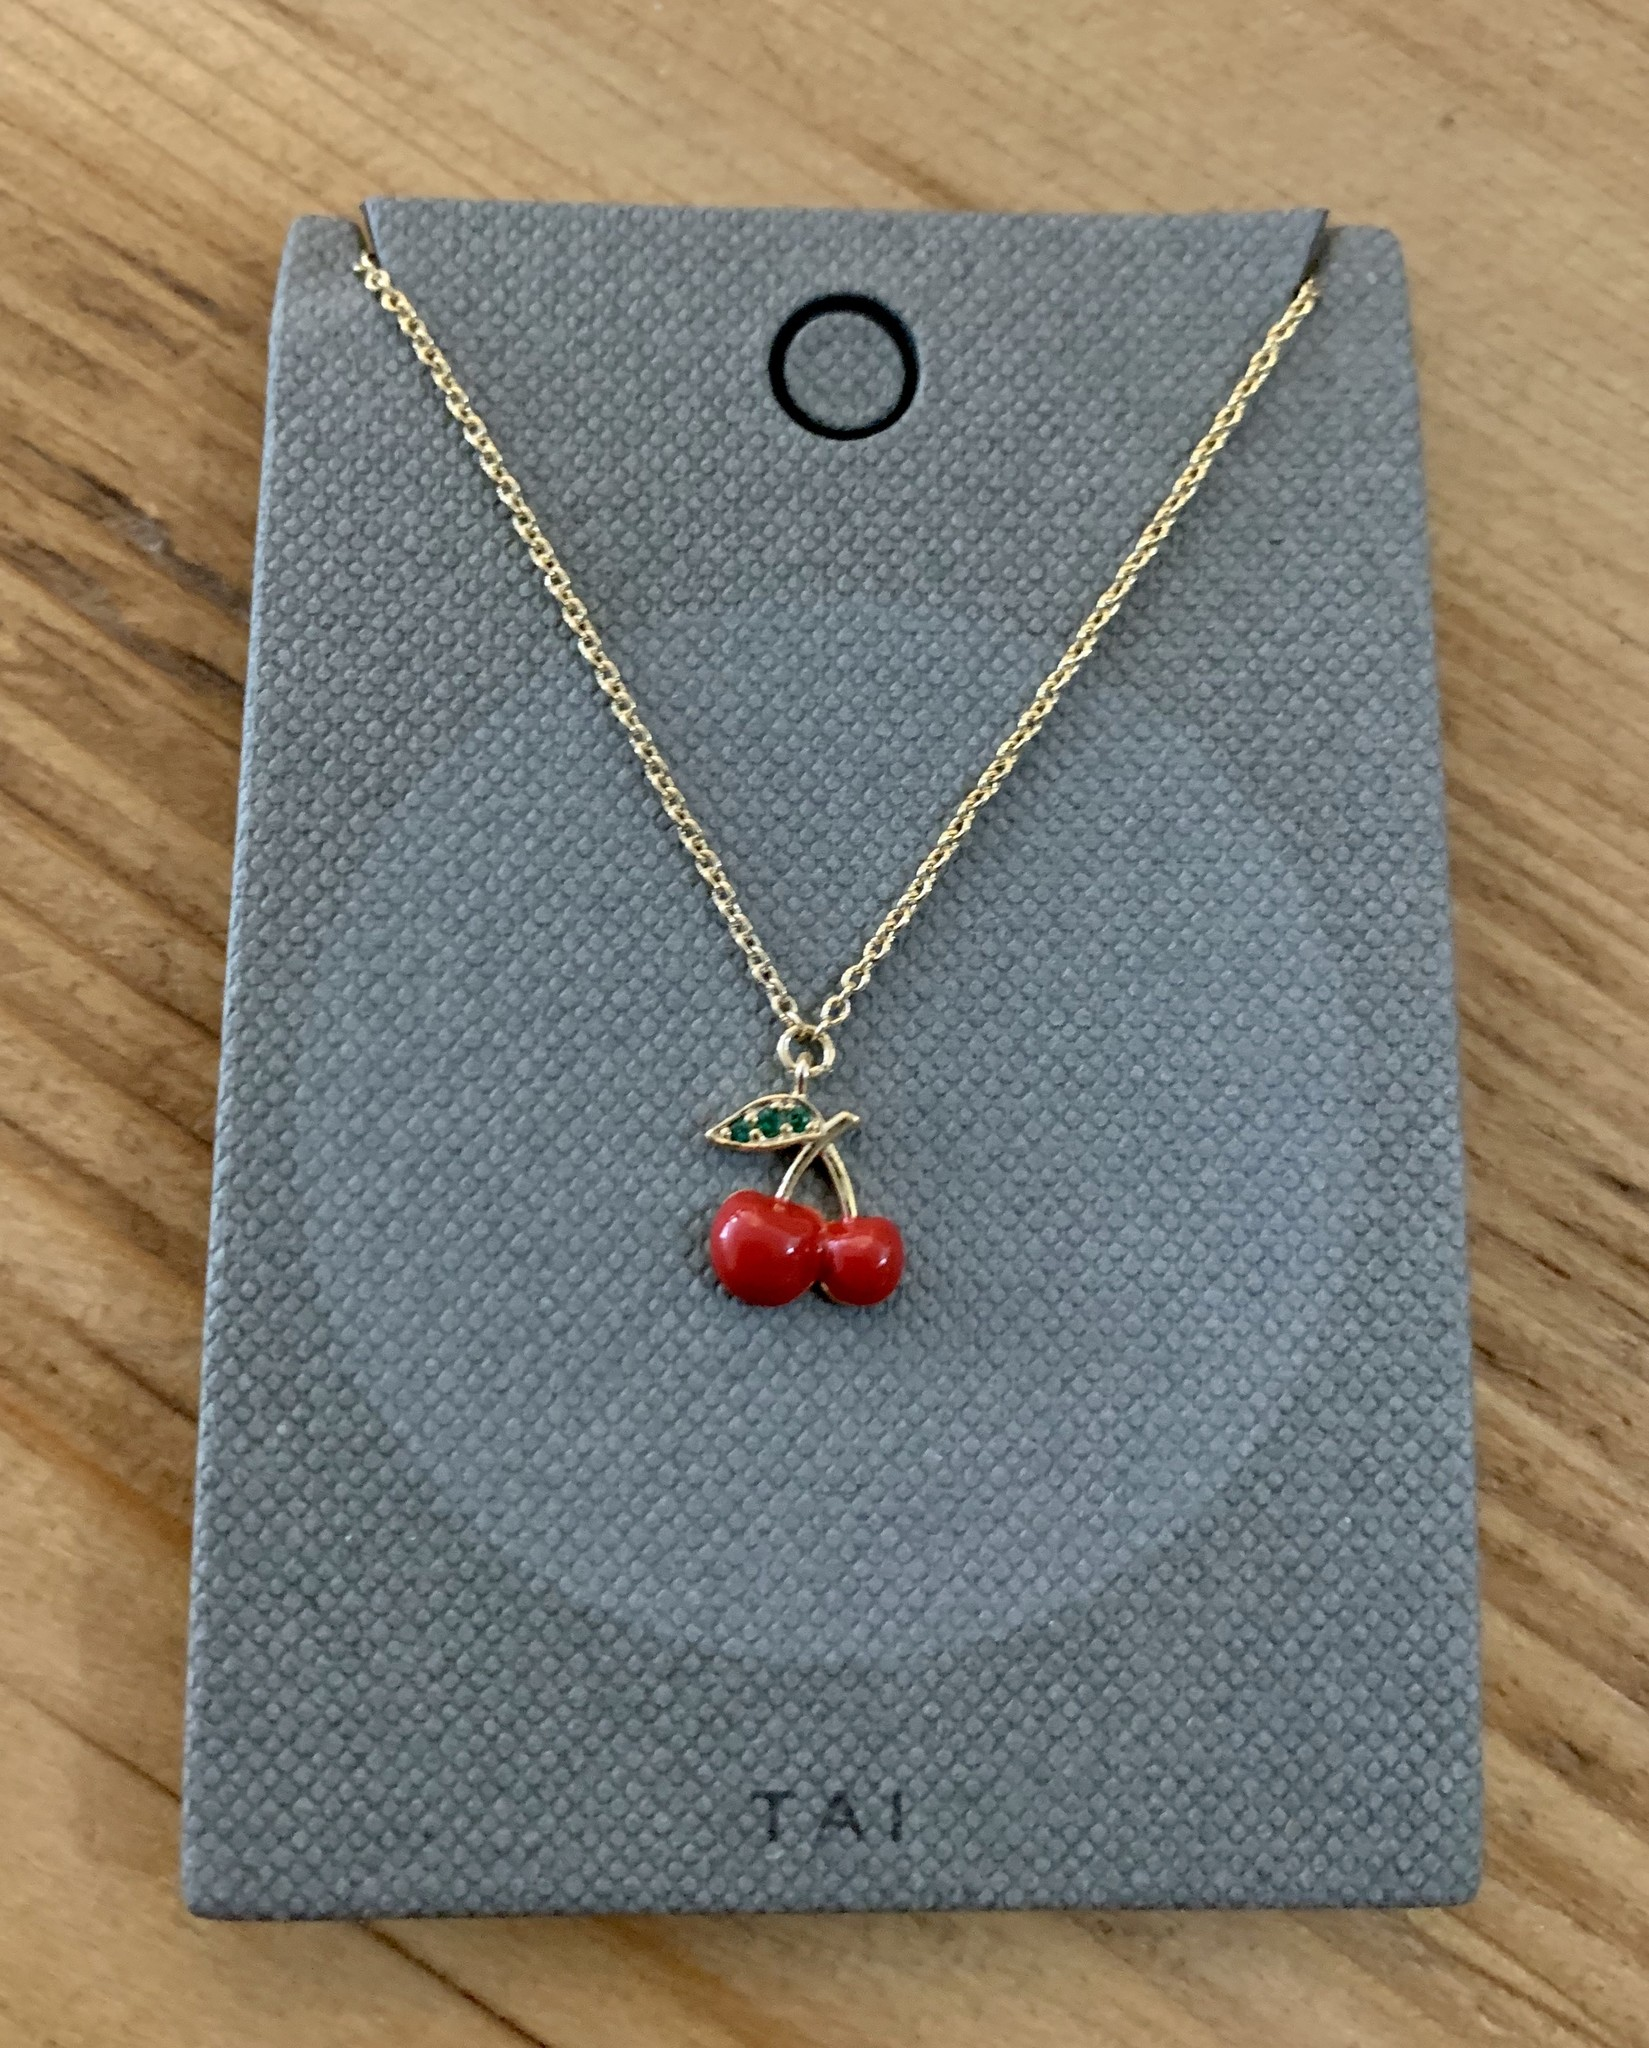 tai Gold Simple Chain w/ Red Enamel Cherry